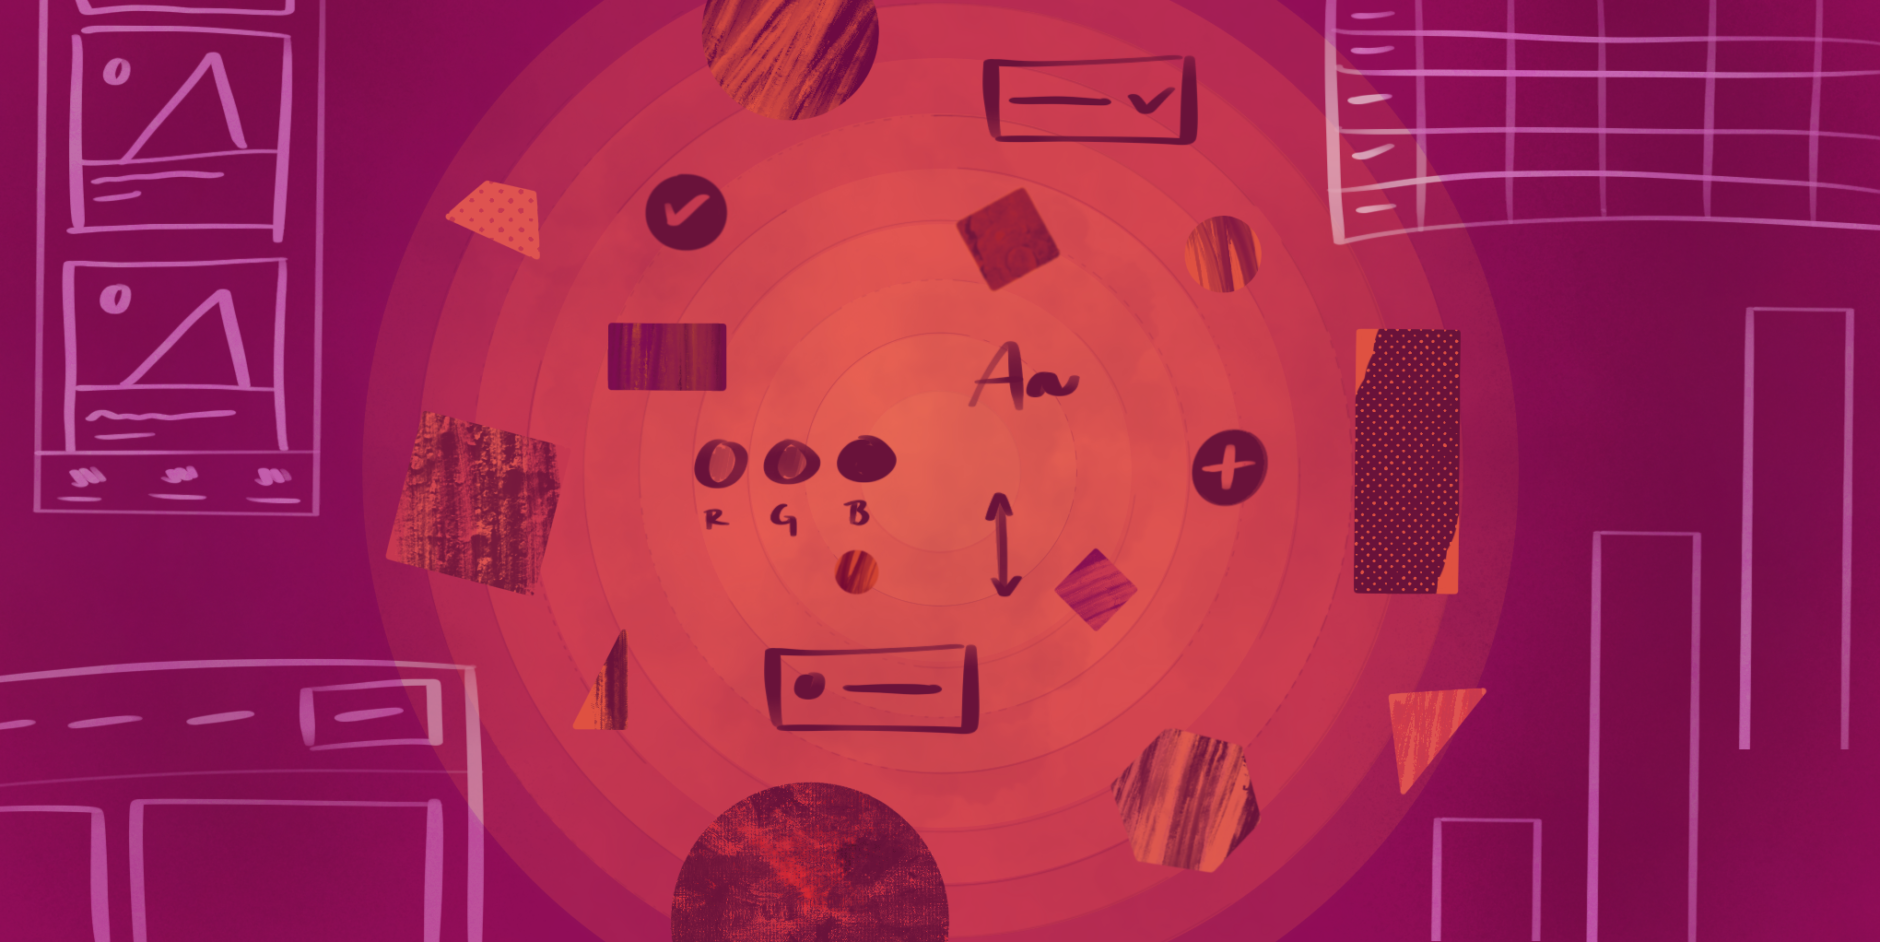 UX Design System elements laid out among geometric shapes